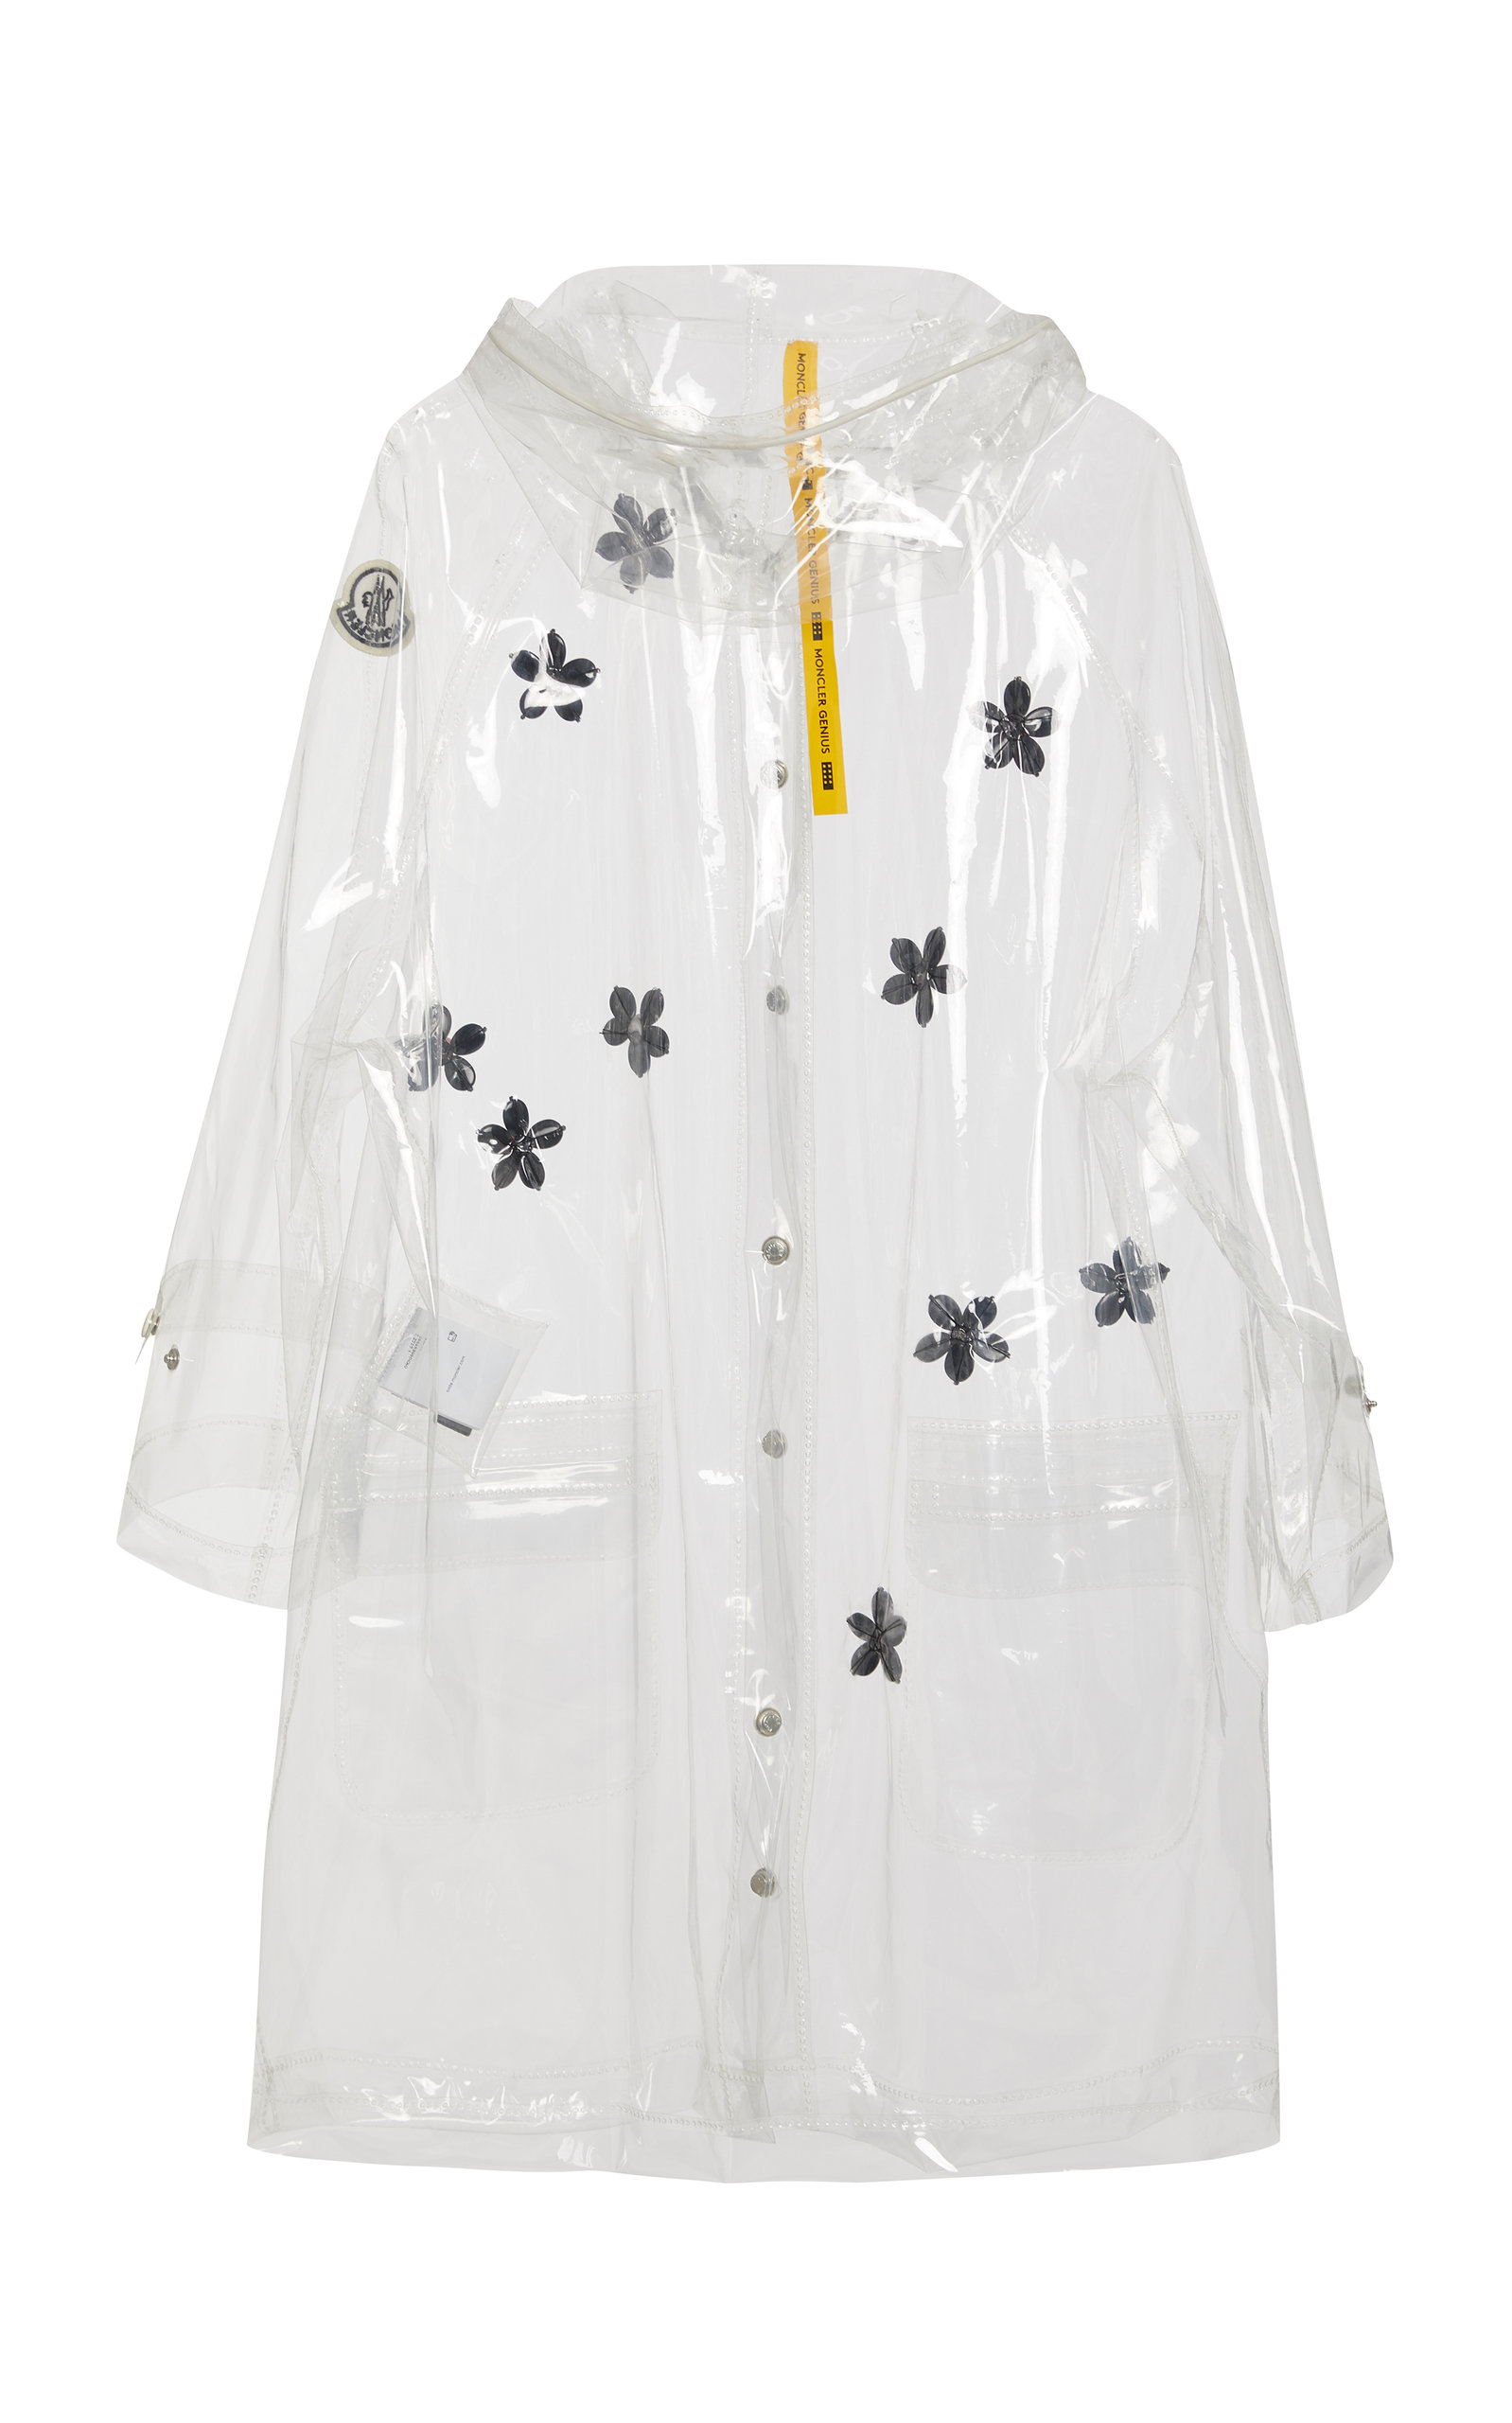 7a8bab2f6 + Simone Rocha Floral-Appliquéd PVC Hooded Raincoat